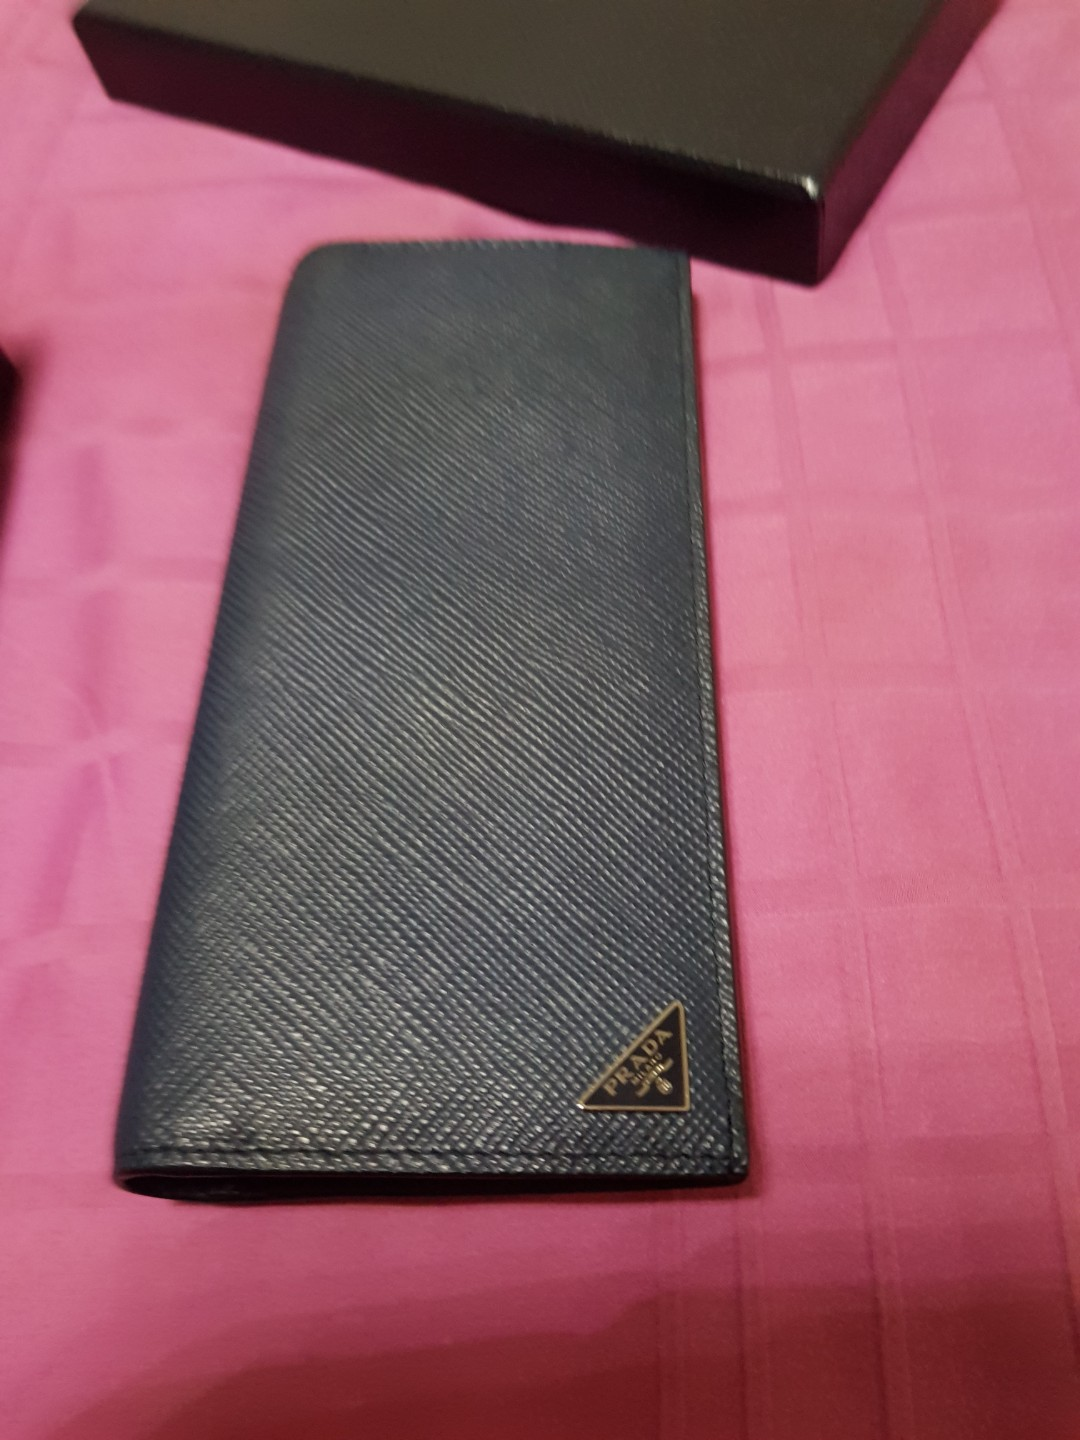 e1169d99654c Prada Mens Wallet, Men's Fashion, Bags & Wallets, Wallets on Carousell